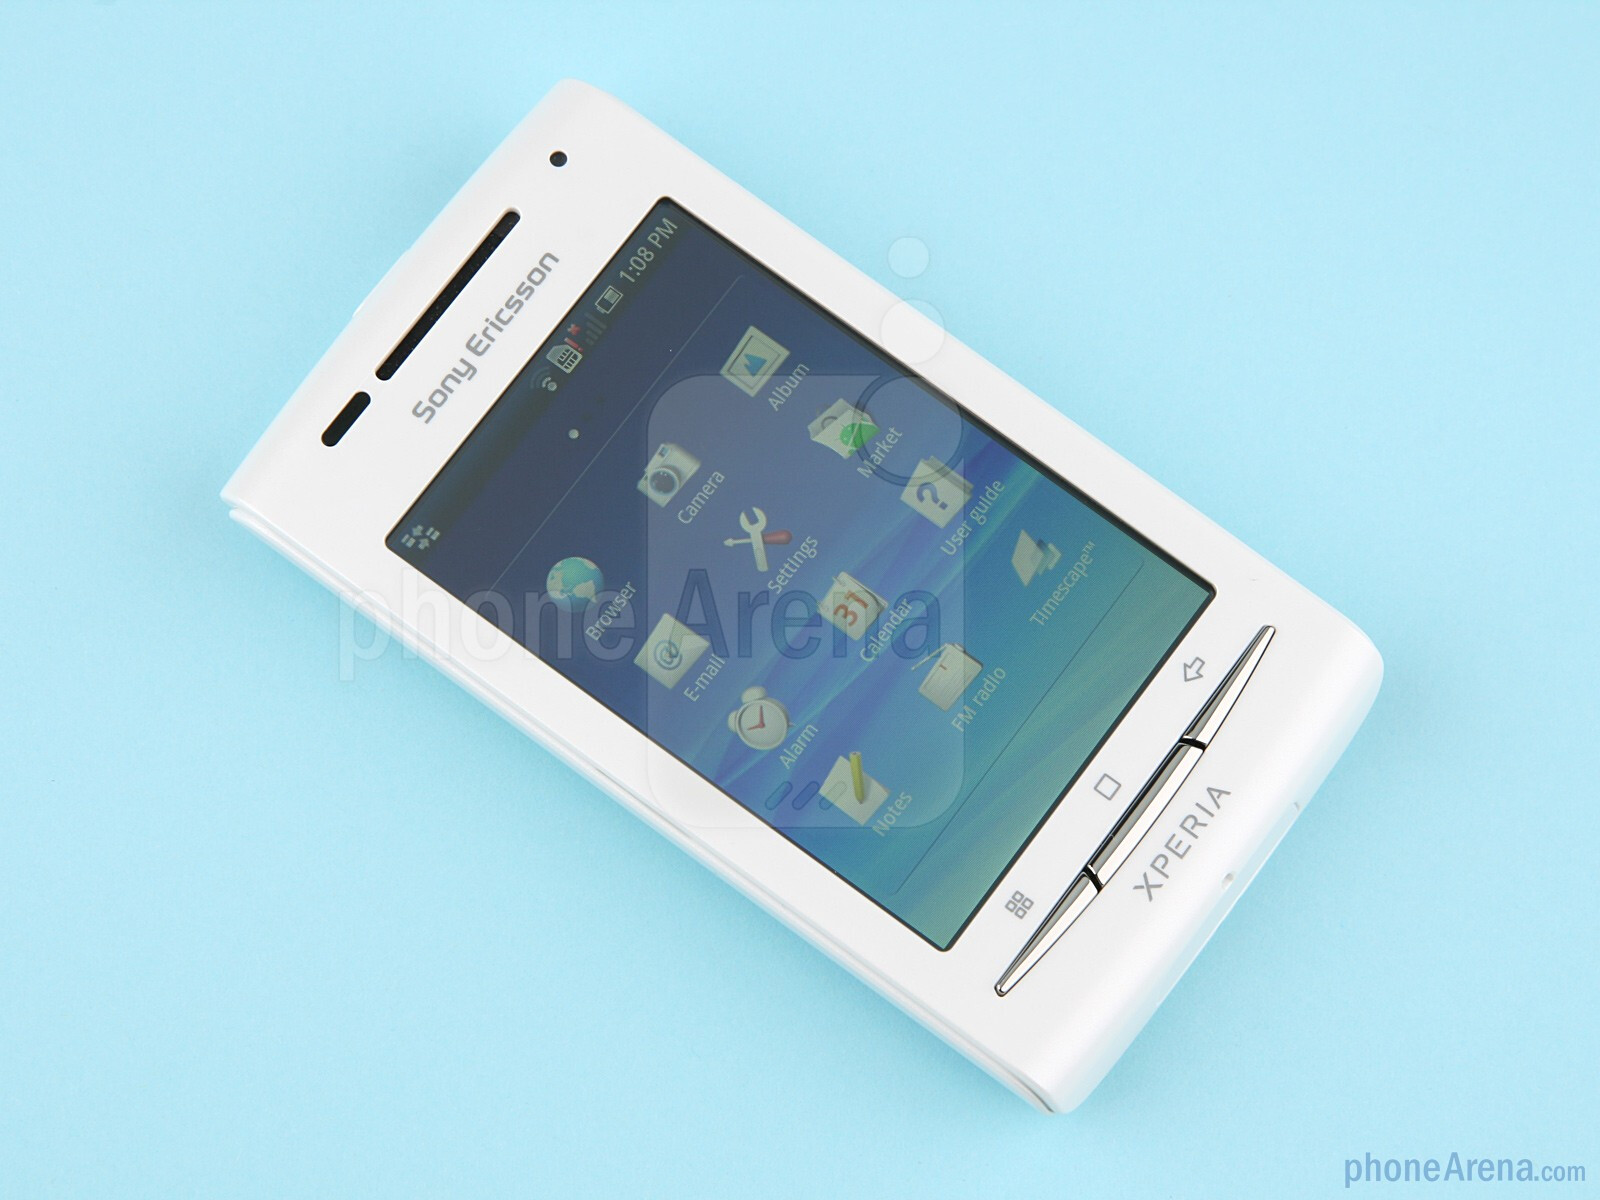 Sony Ericsson Xperia X8 Review - Performance and ...